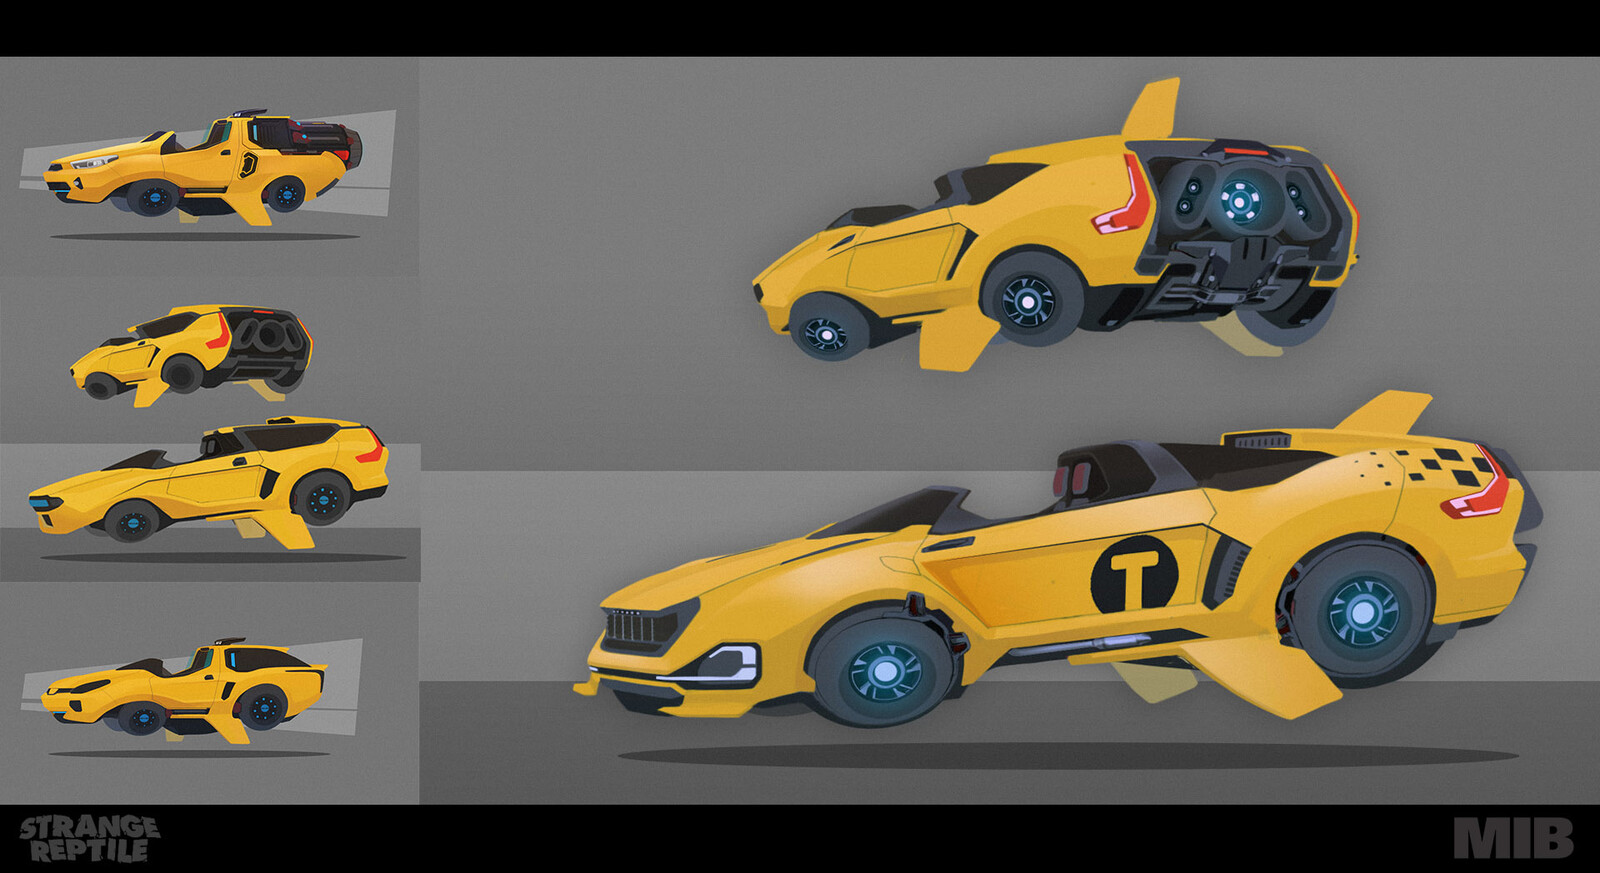 Initial concept paintings